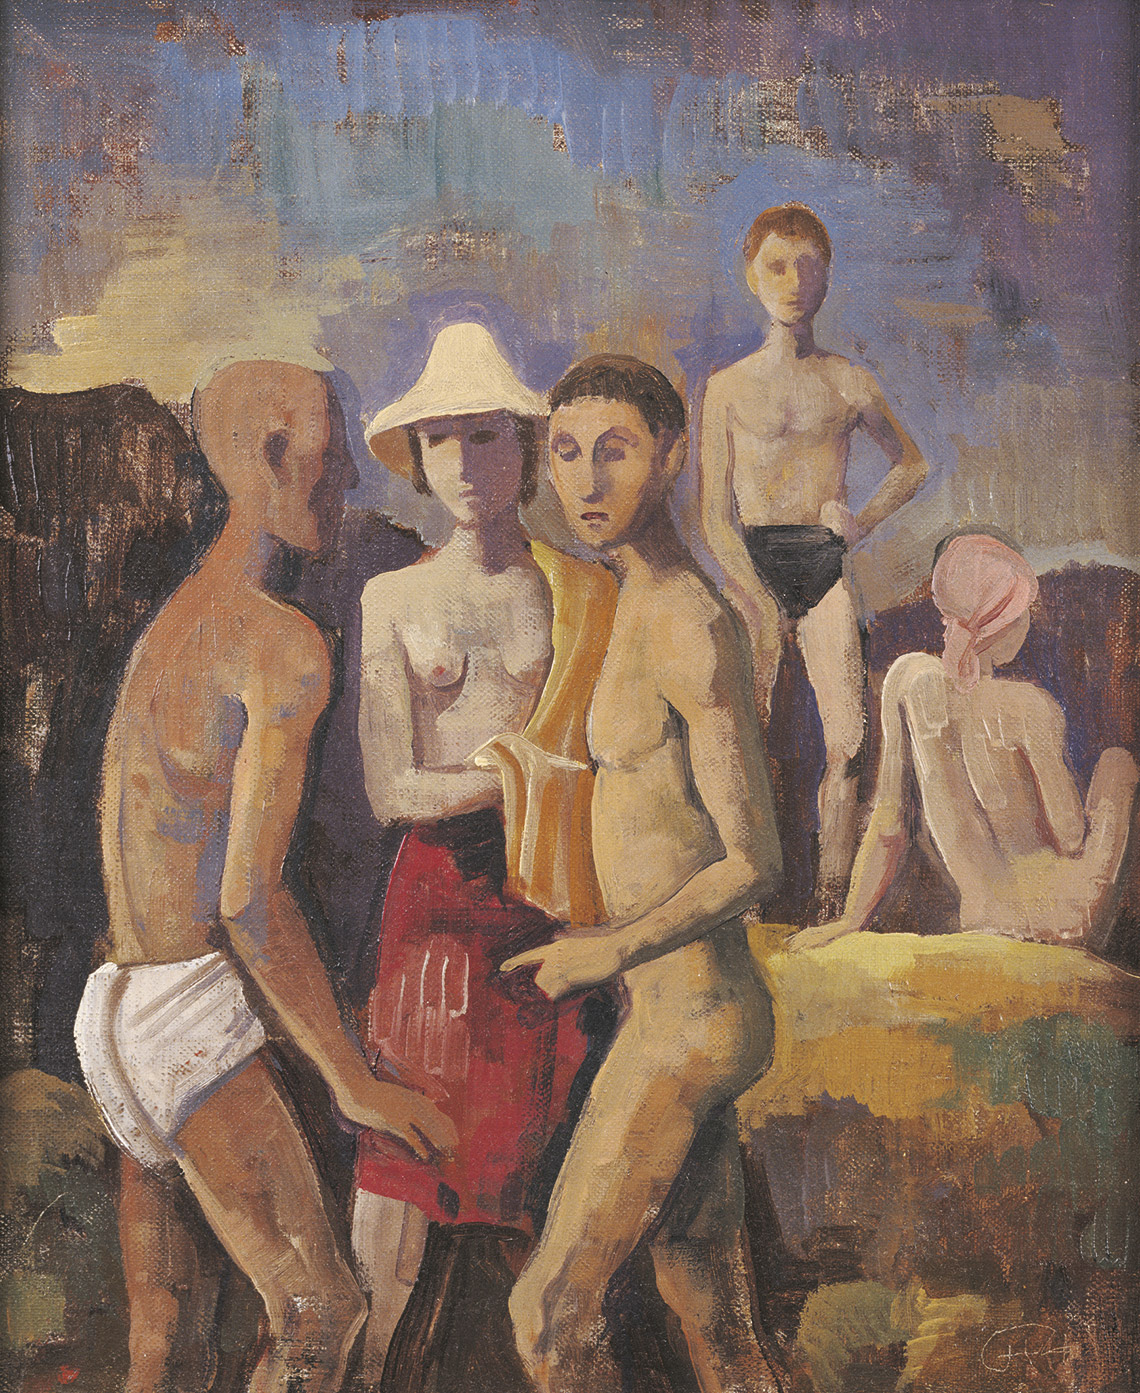 Karl Hofer | Fünf Figuren am Meer | 1944